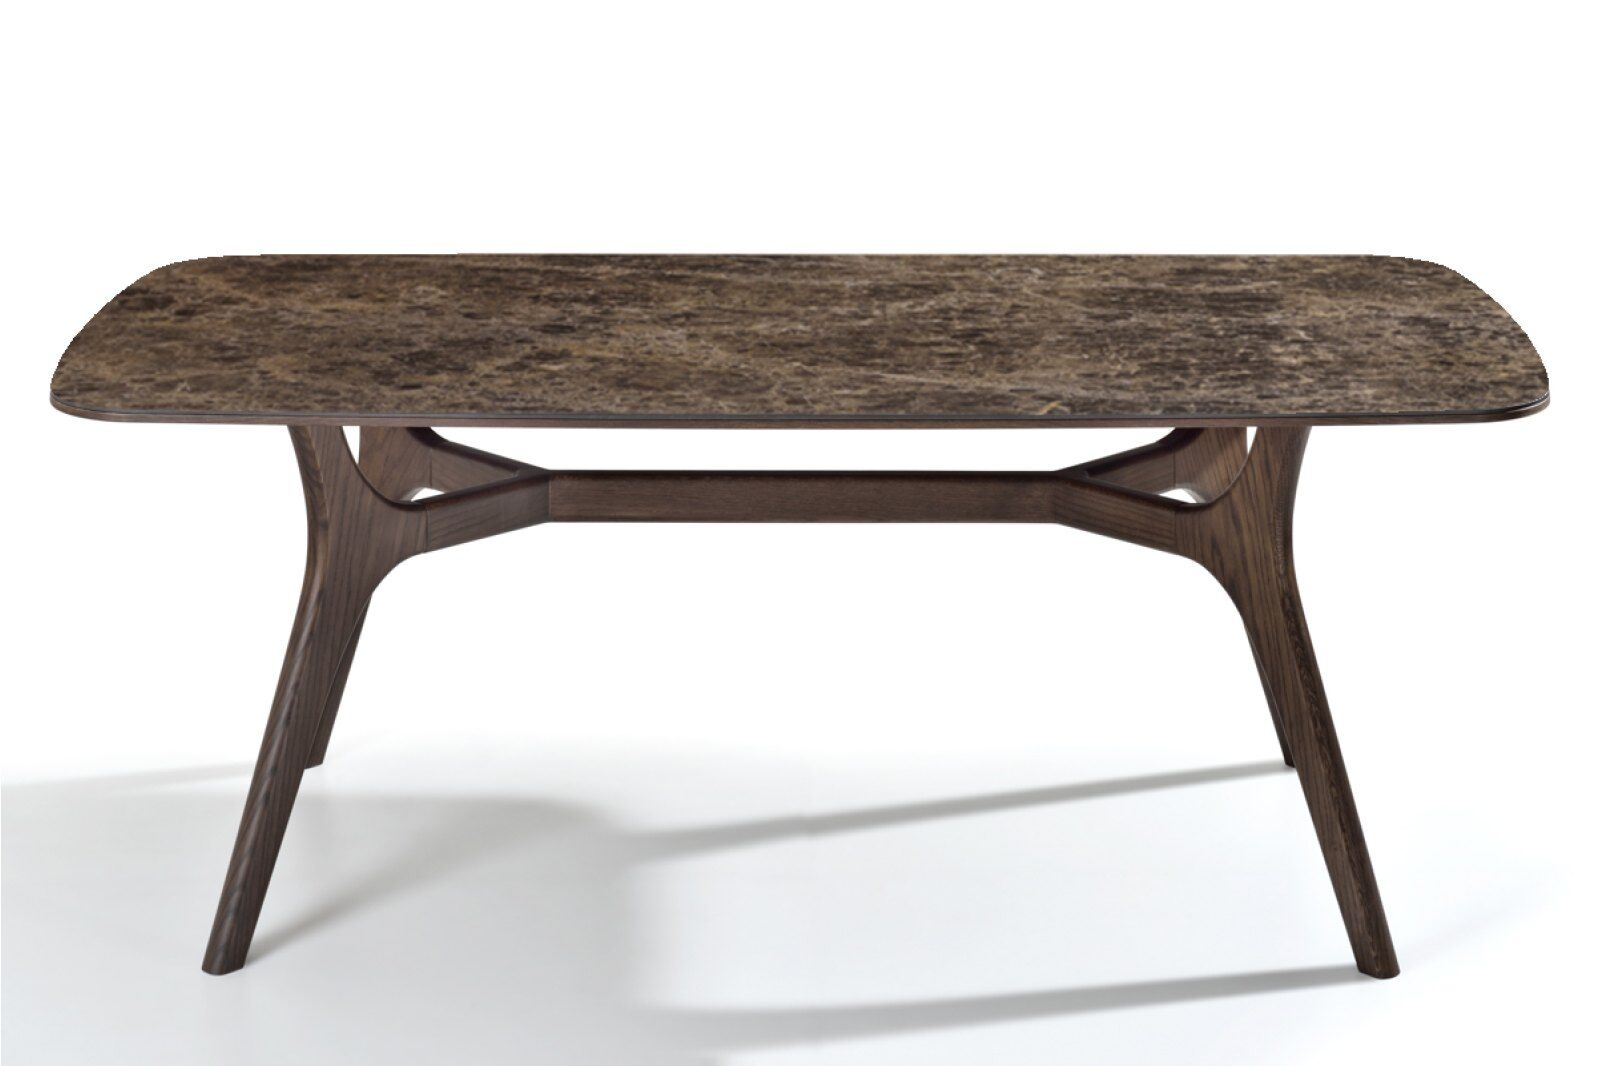 Blade Ceramic Top Dining Table 220cm / 1